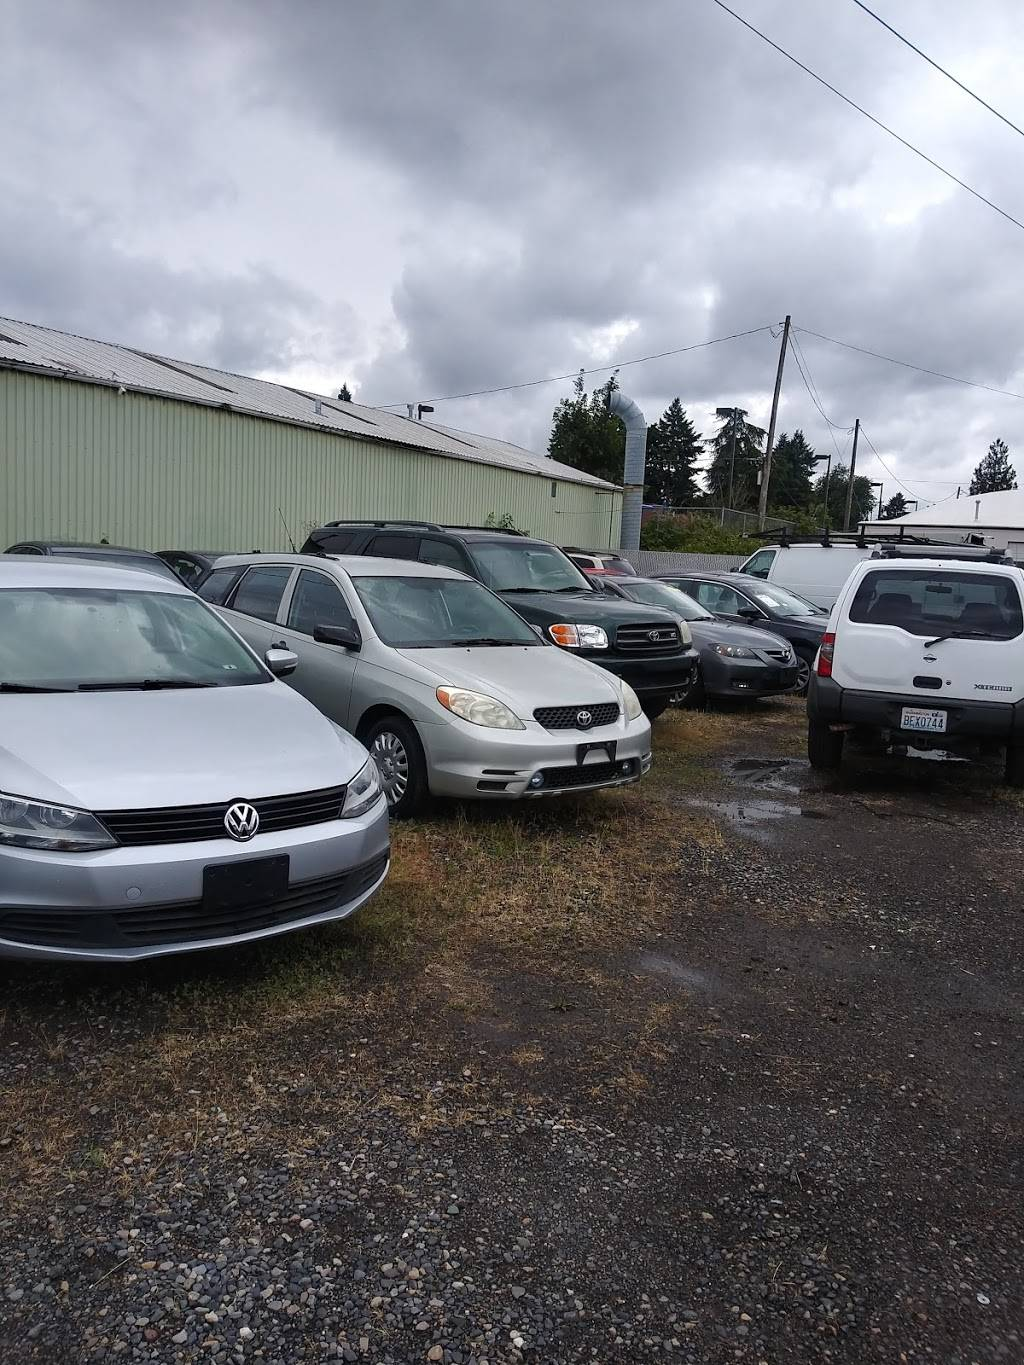 HK Auto Sales - car dealer  | Photo 5 of 10 | Address: 5555 NE Cully Blvd, Portland, OR 97218, USA | Phone: (503) 267-6886